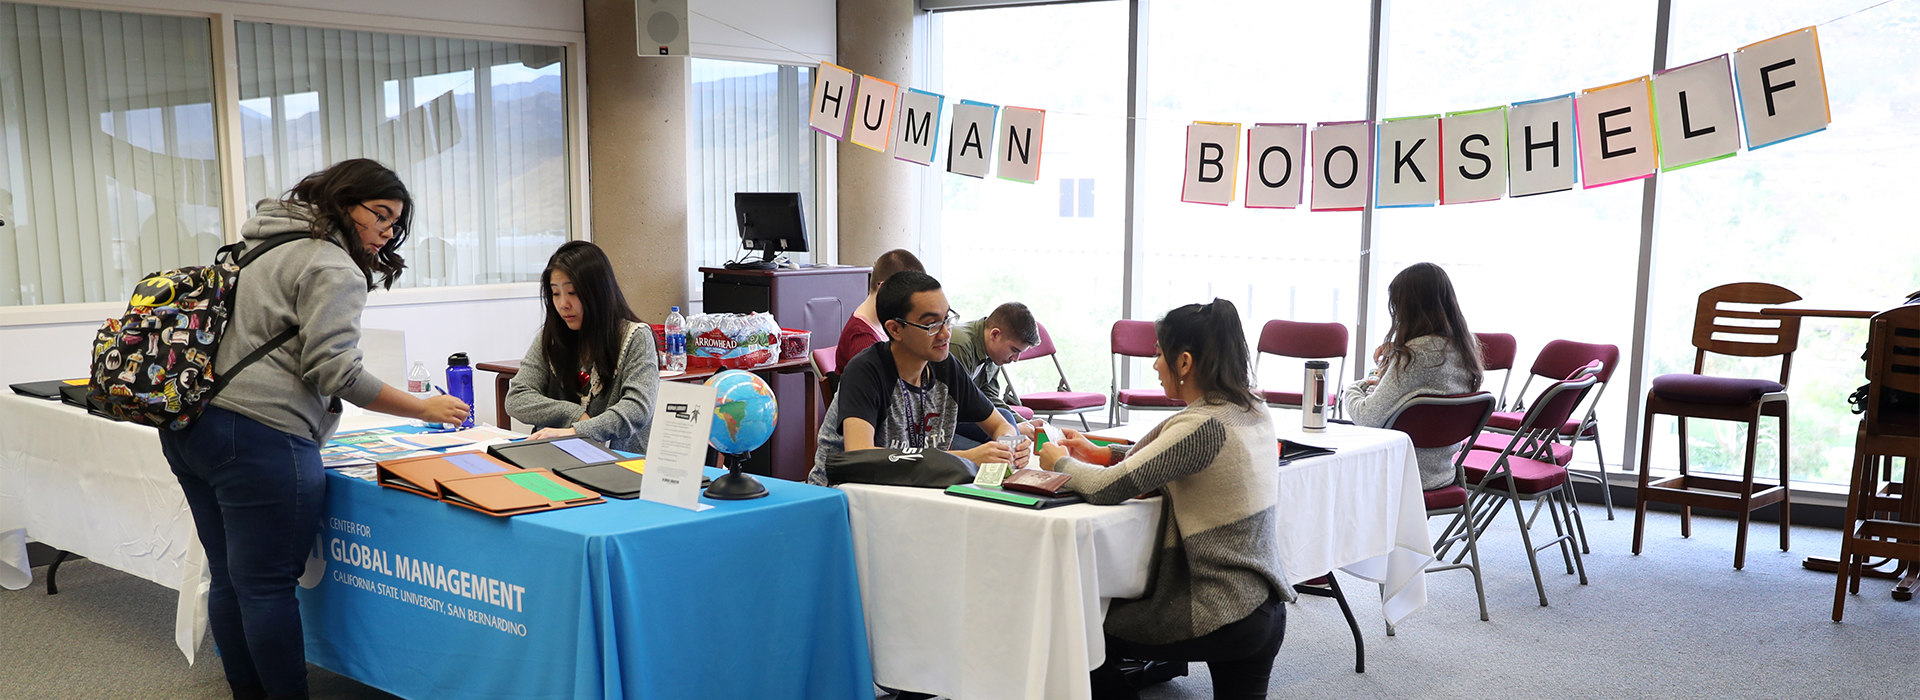 Human Library, designed to challenge prejudice, comes to CSUSB